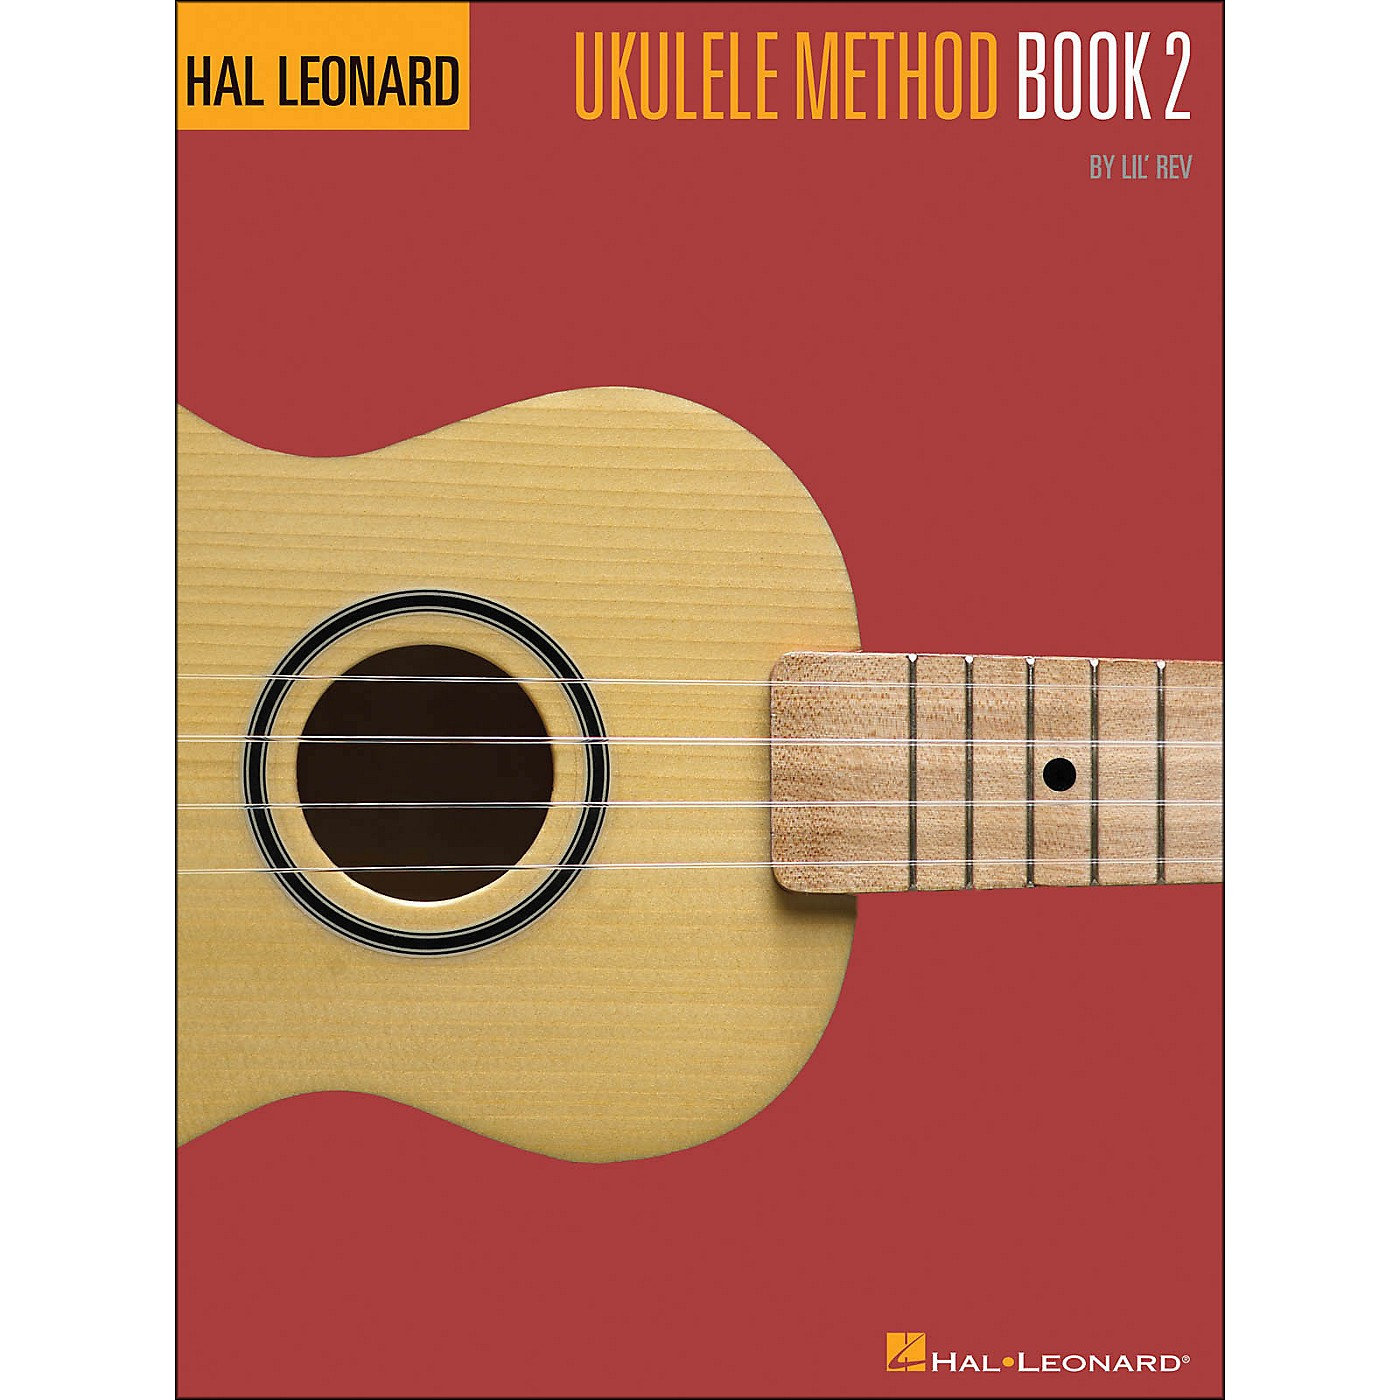 Hal Leonard Ukulele Method Book 2 thumbnail